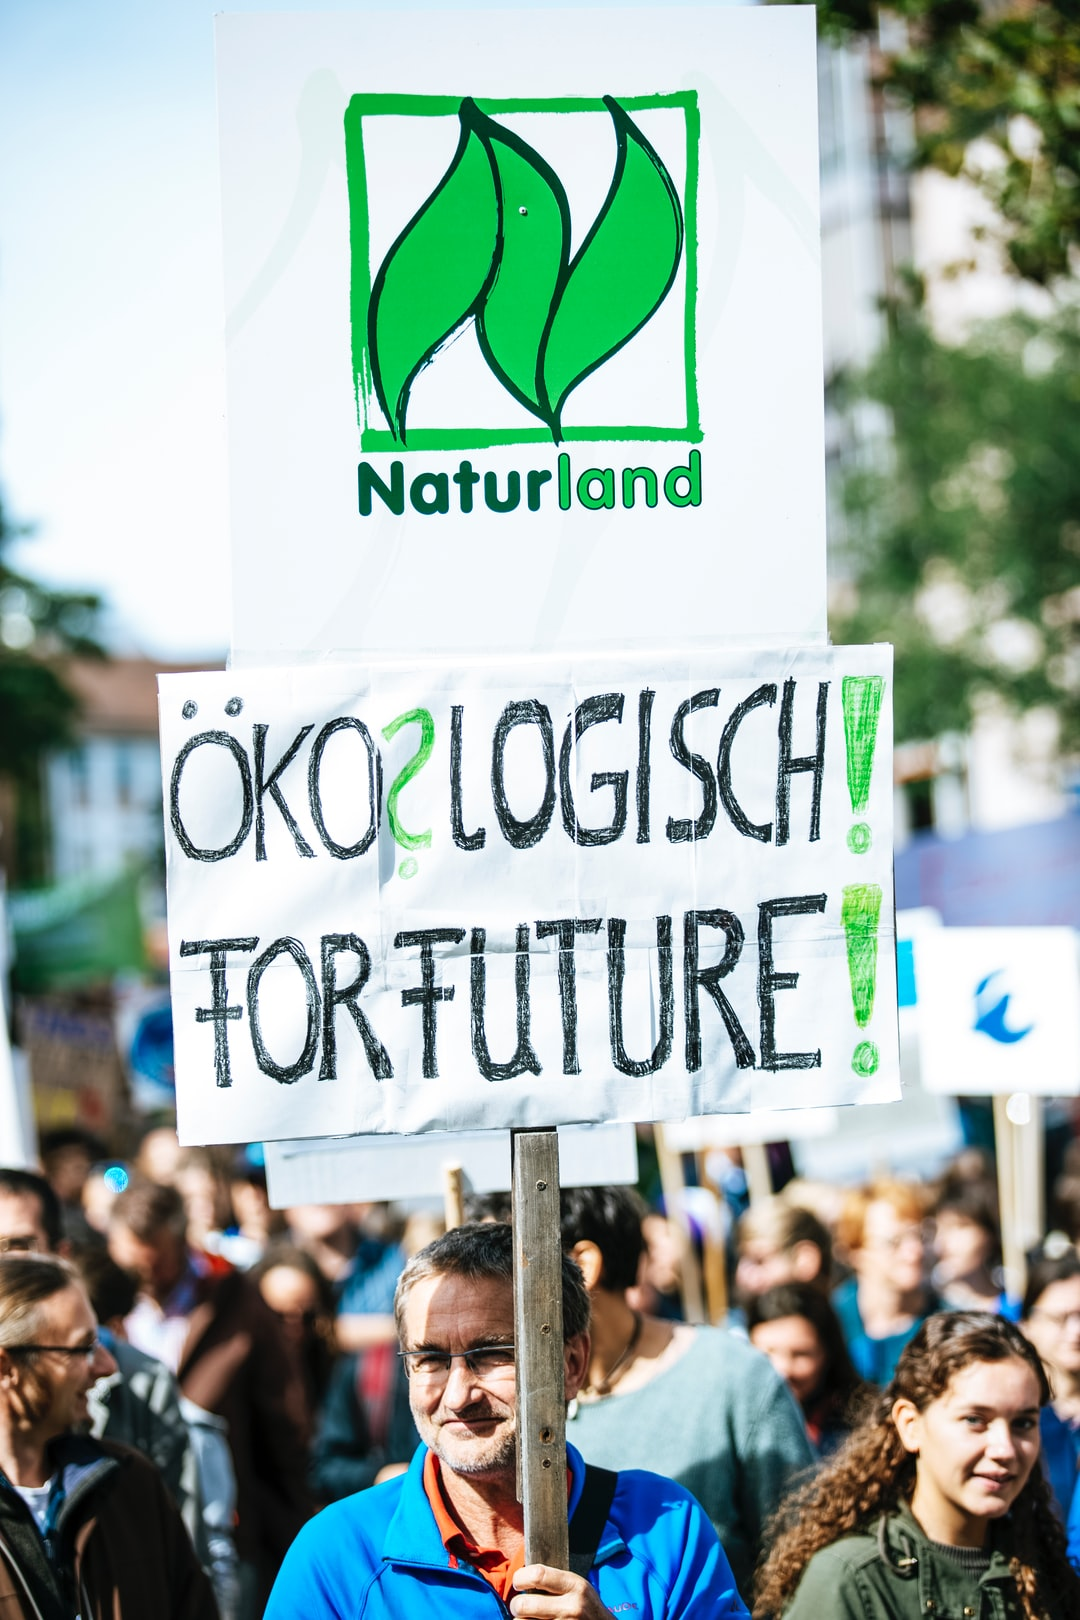 ÖKO? LOGISCH! FOR FUTURE! Global climate change strike - No Planet B - 09-20-2019